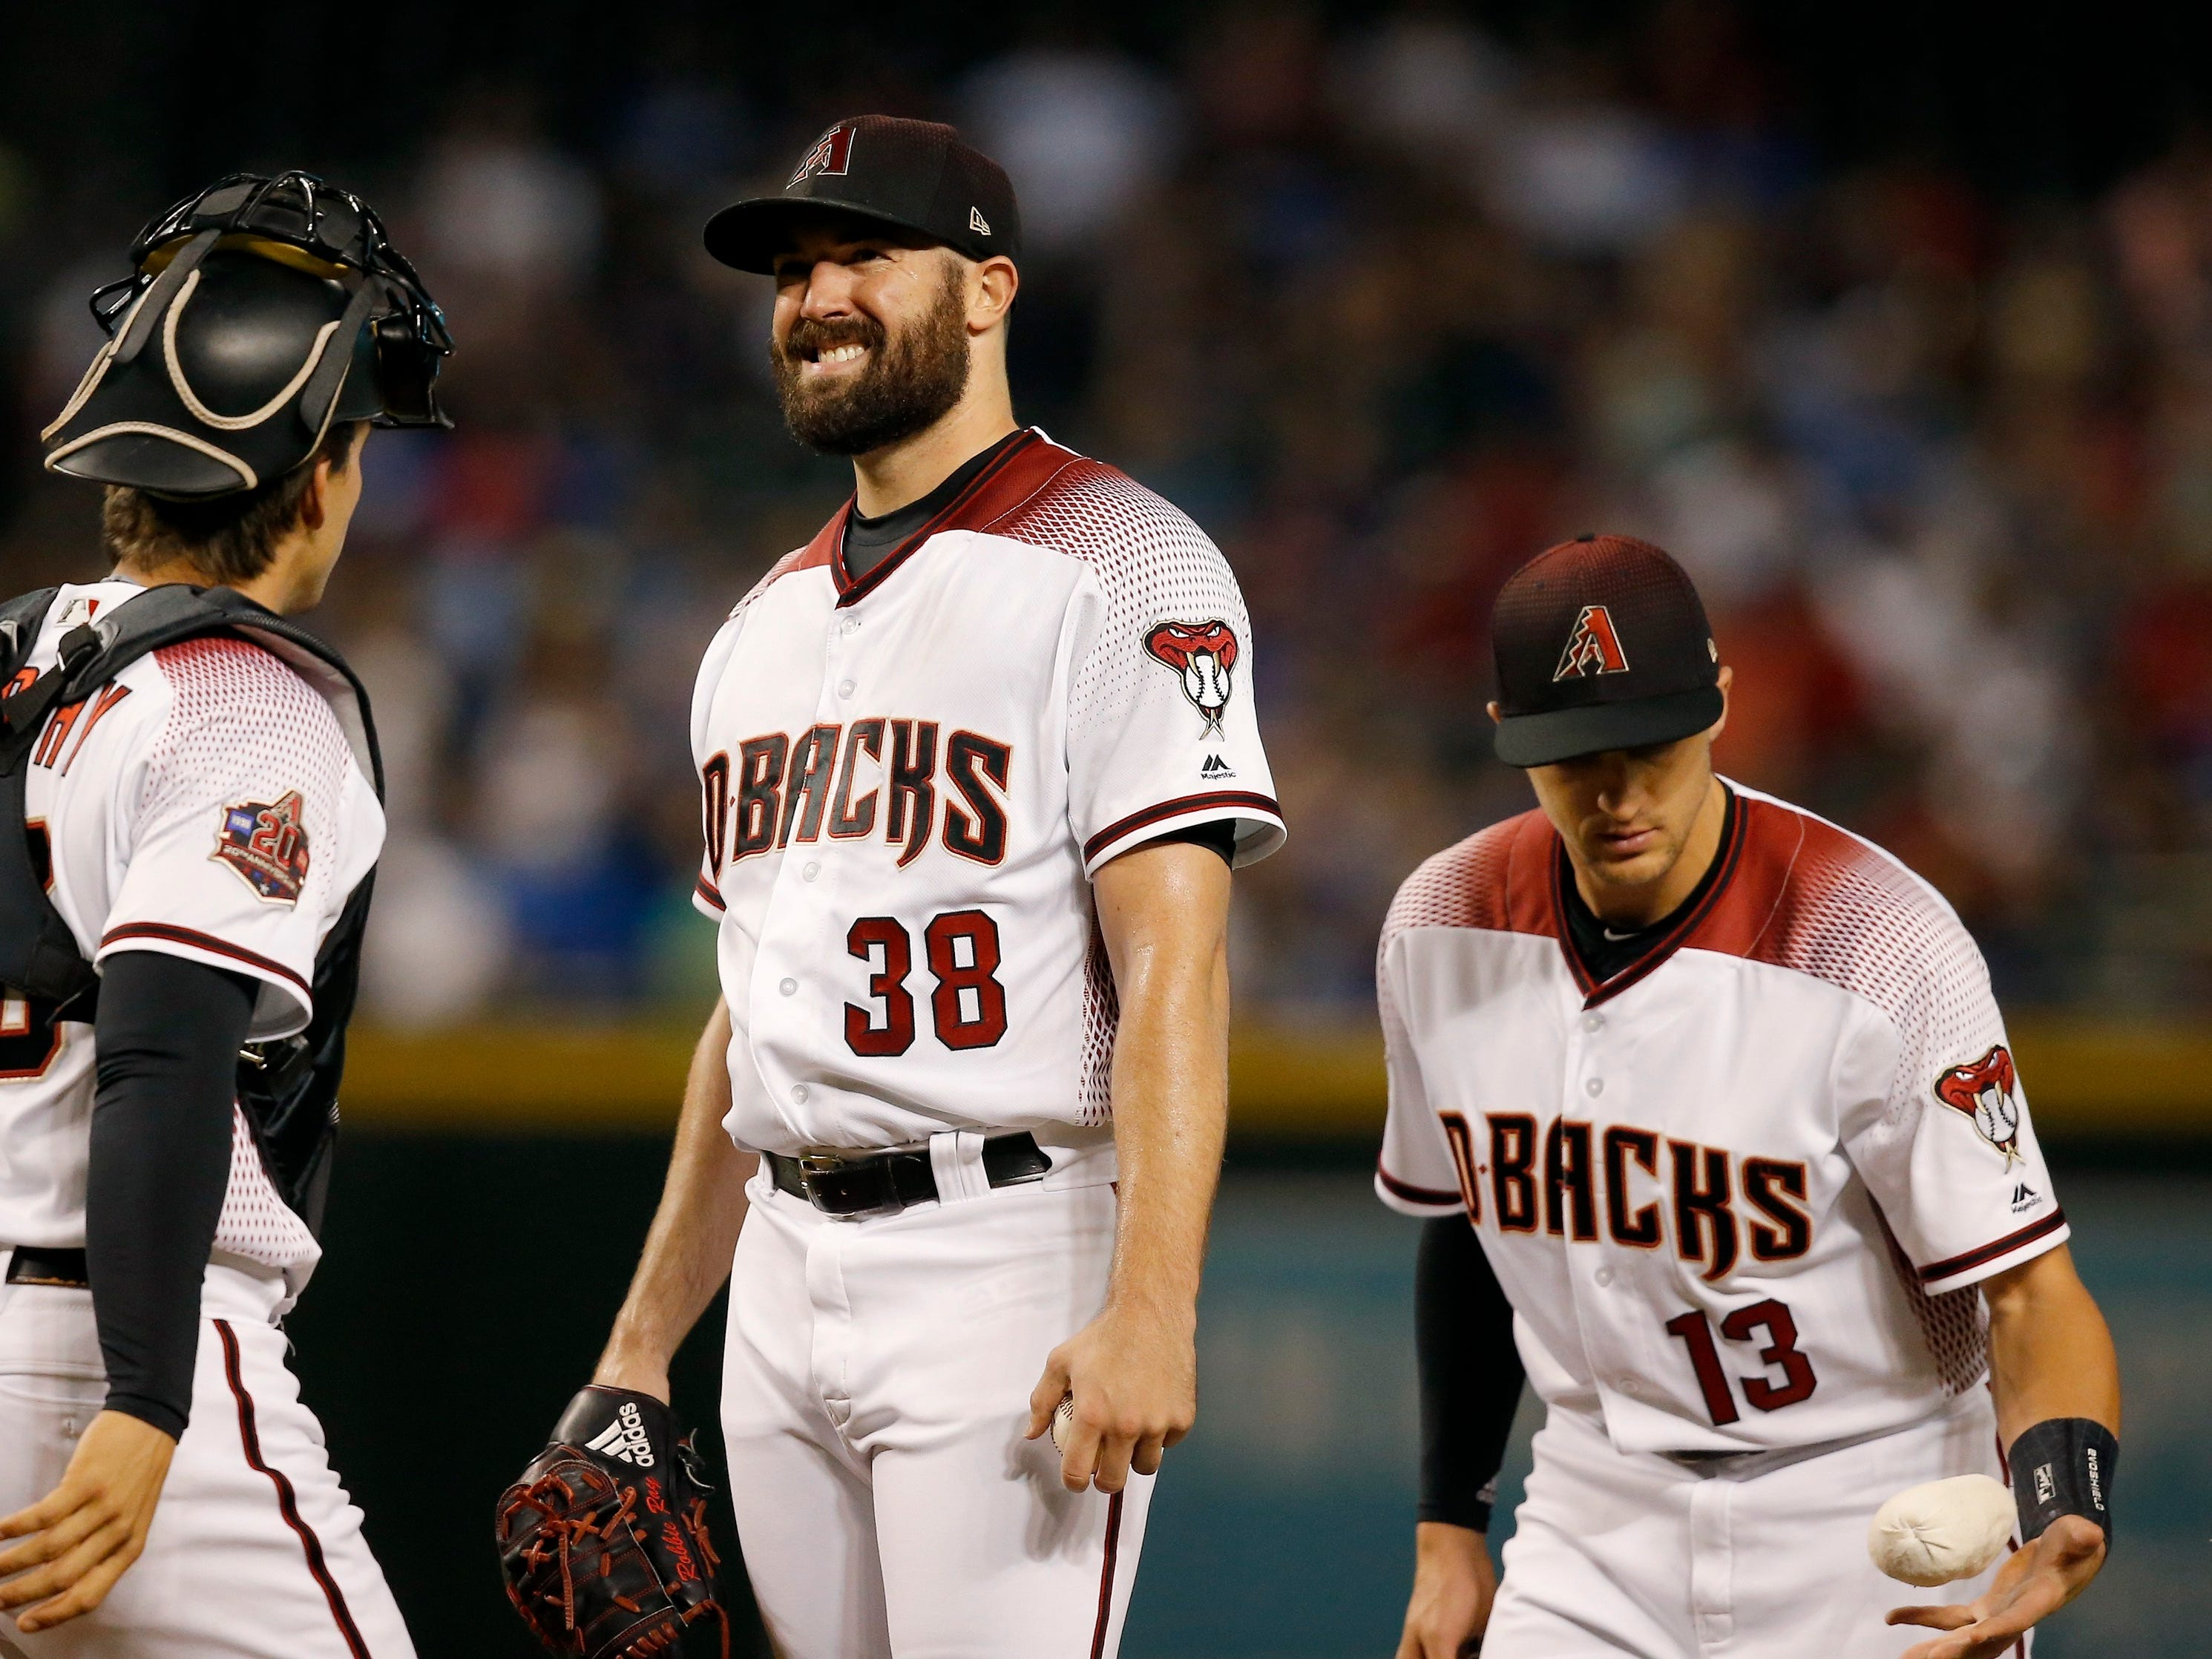 Arizona Diamondbacks starting pitcher Robbie Ray (38) gets a visit from catcher John Ryan Murphy, left, and shortstop Nick Ahmed (13) during the first inning of a baseball game against the Los Angeles Dodgers, Monday, Sept. 24, 2018, in Phoenix. (AP Photo/Ross D. Franklin)